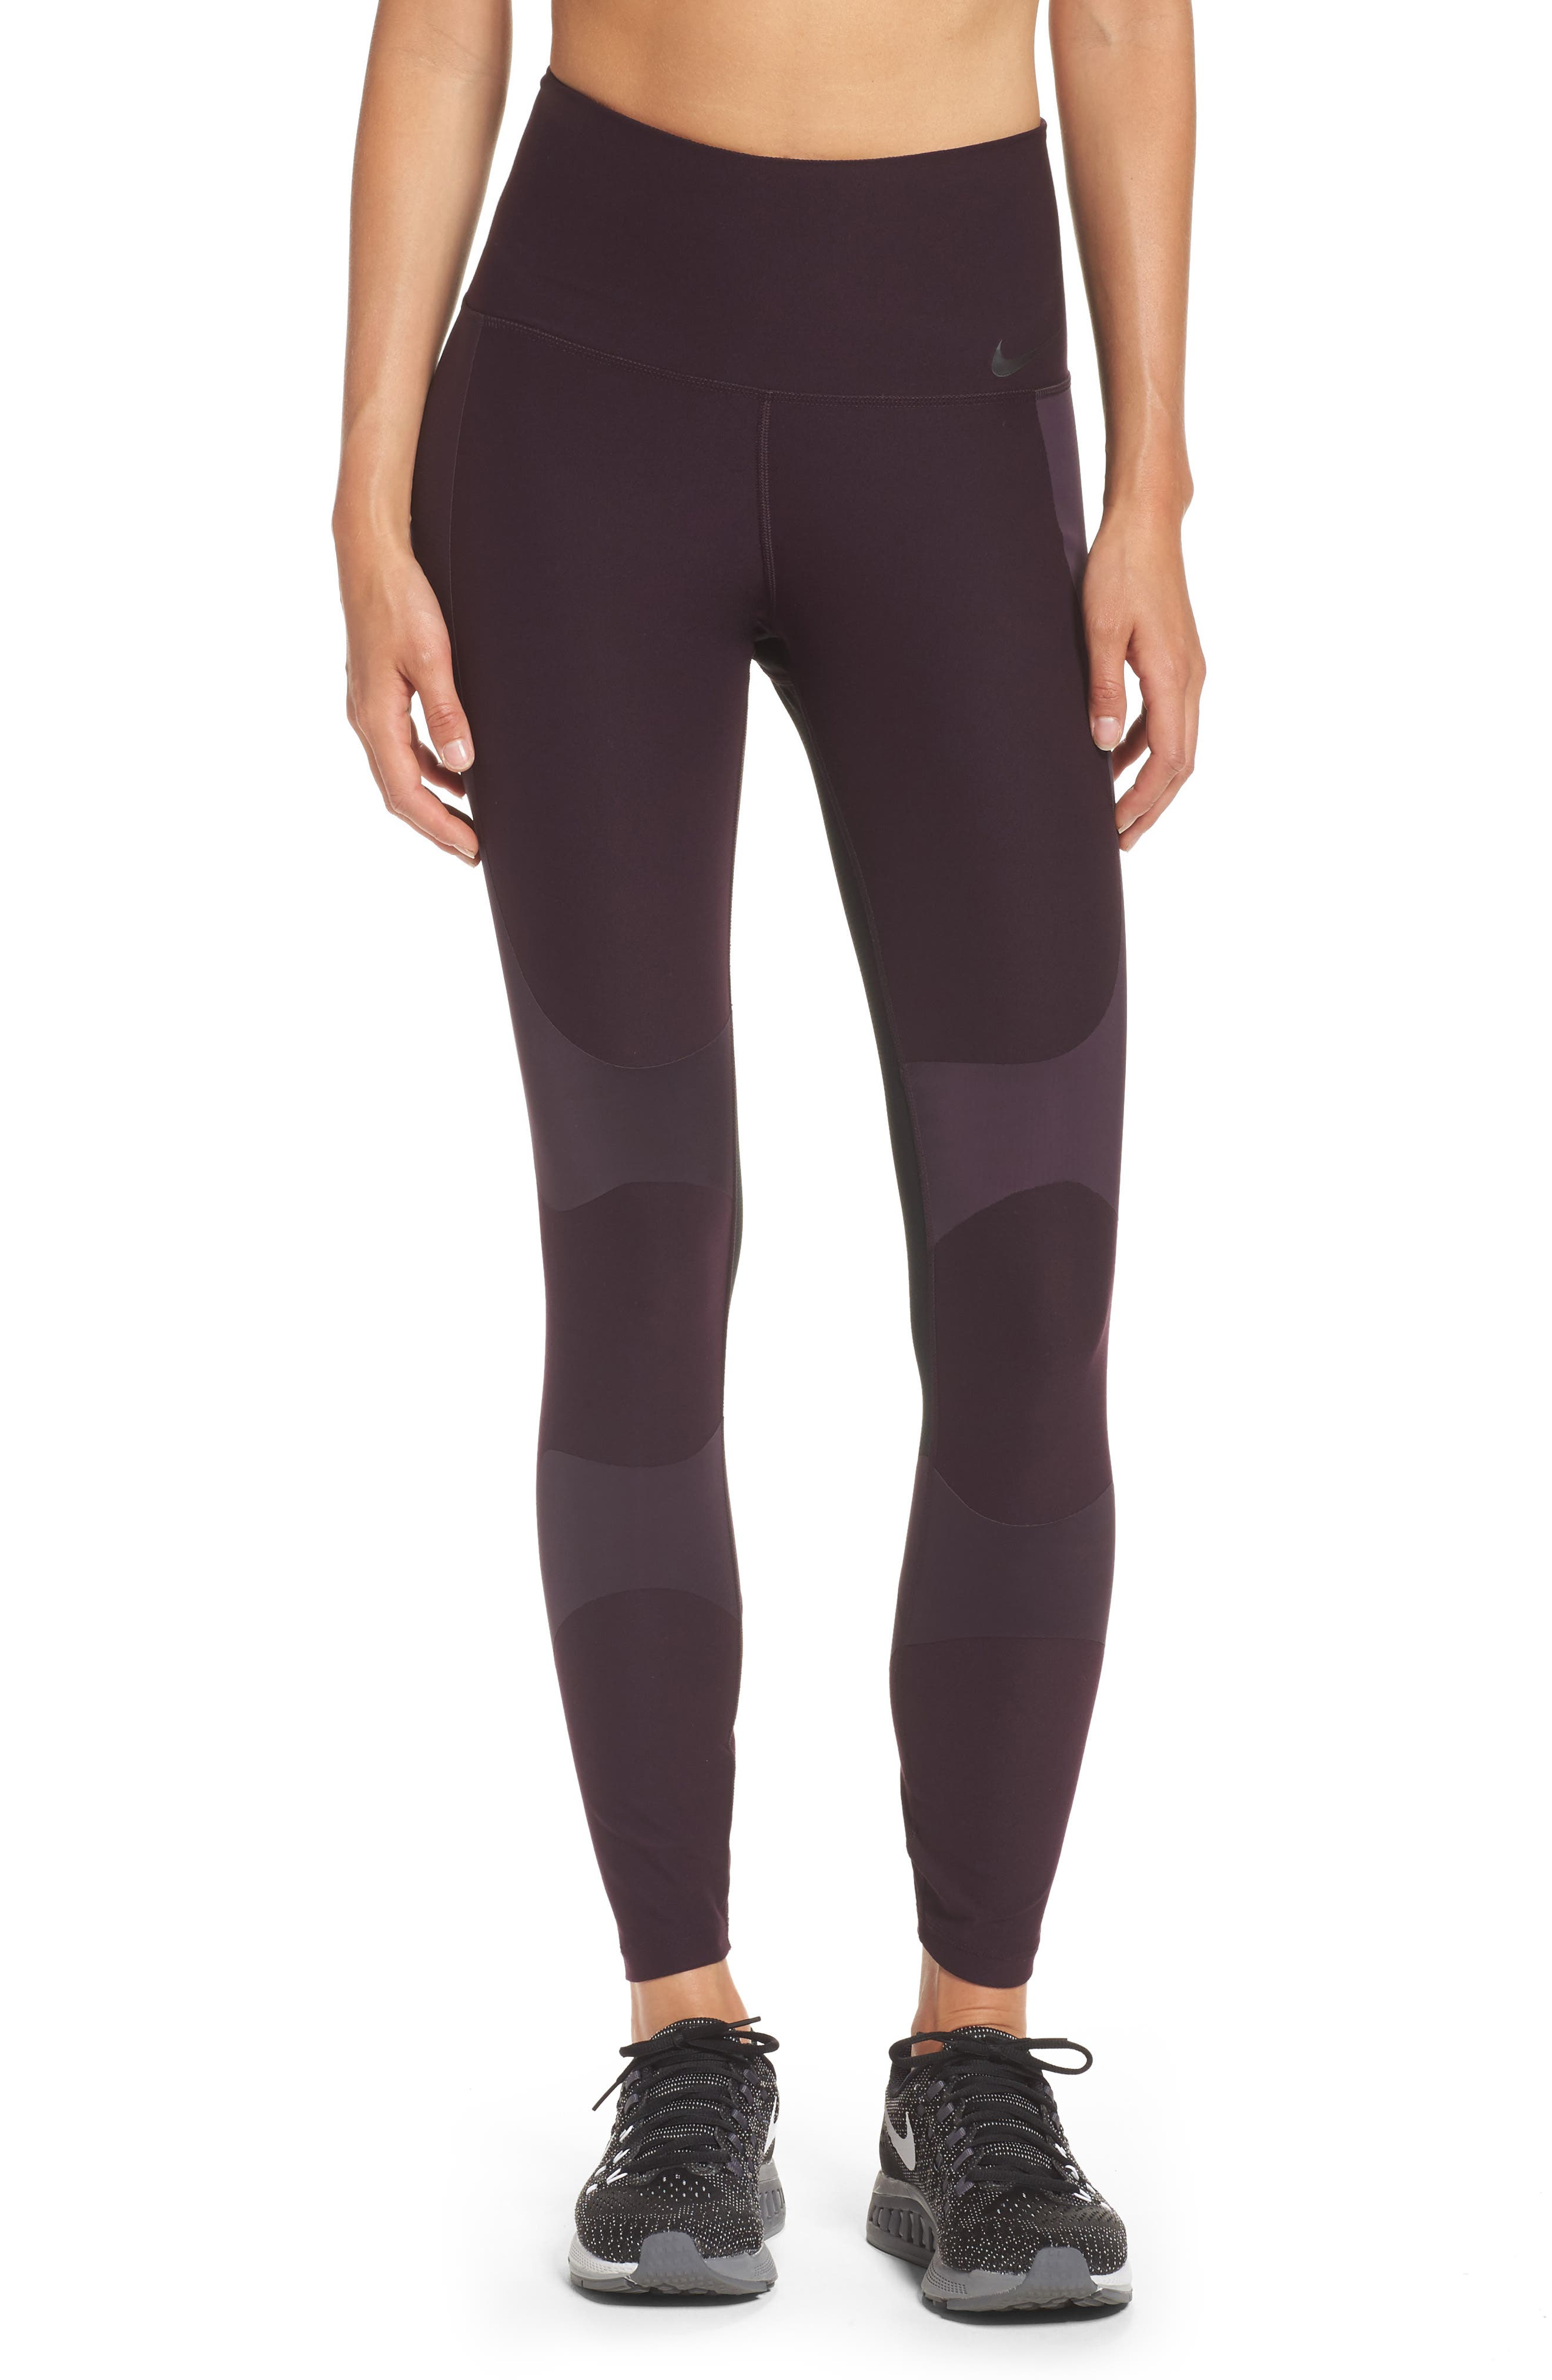 Power Legend Training Tights,                             Main thumbnail 3, color,